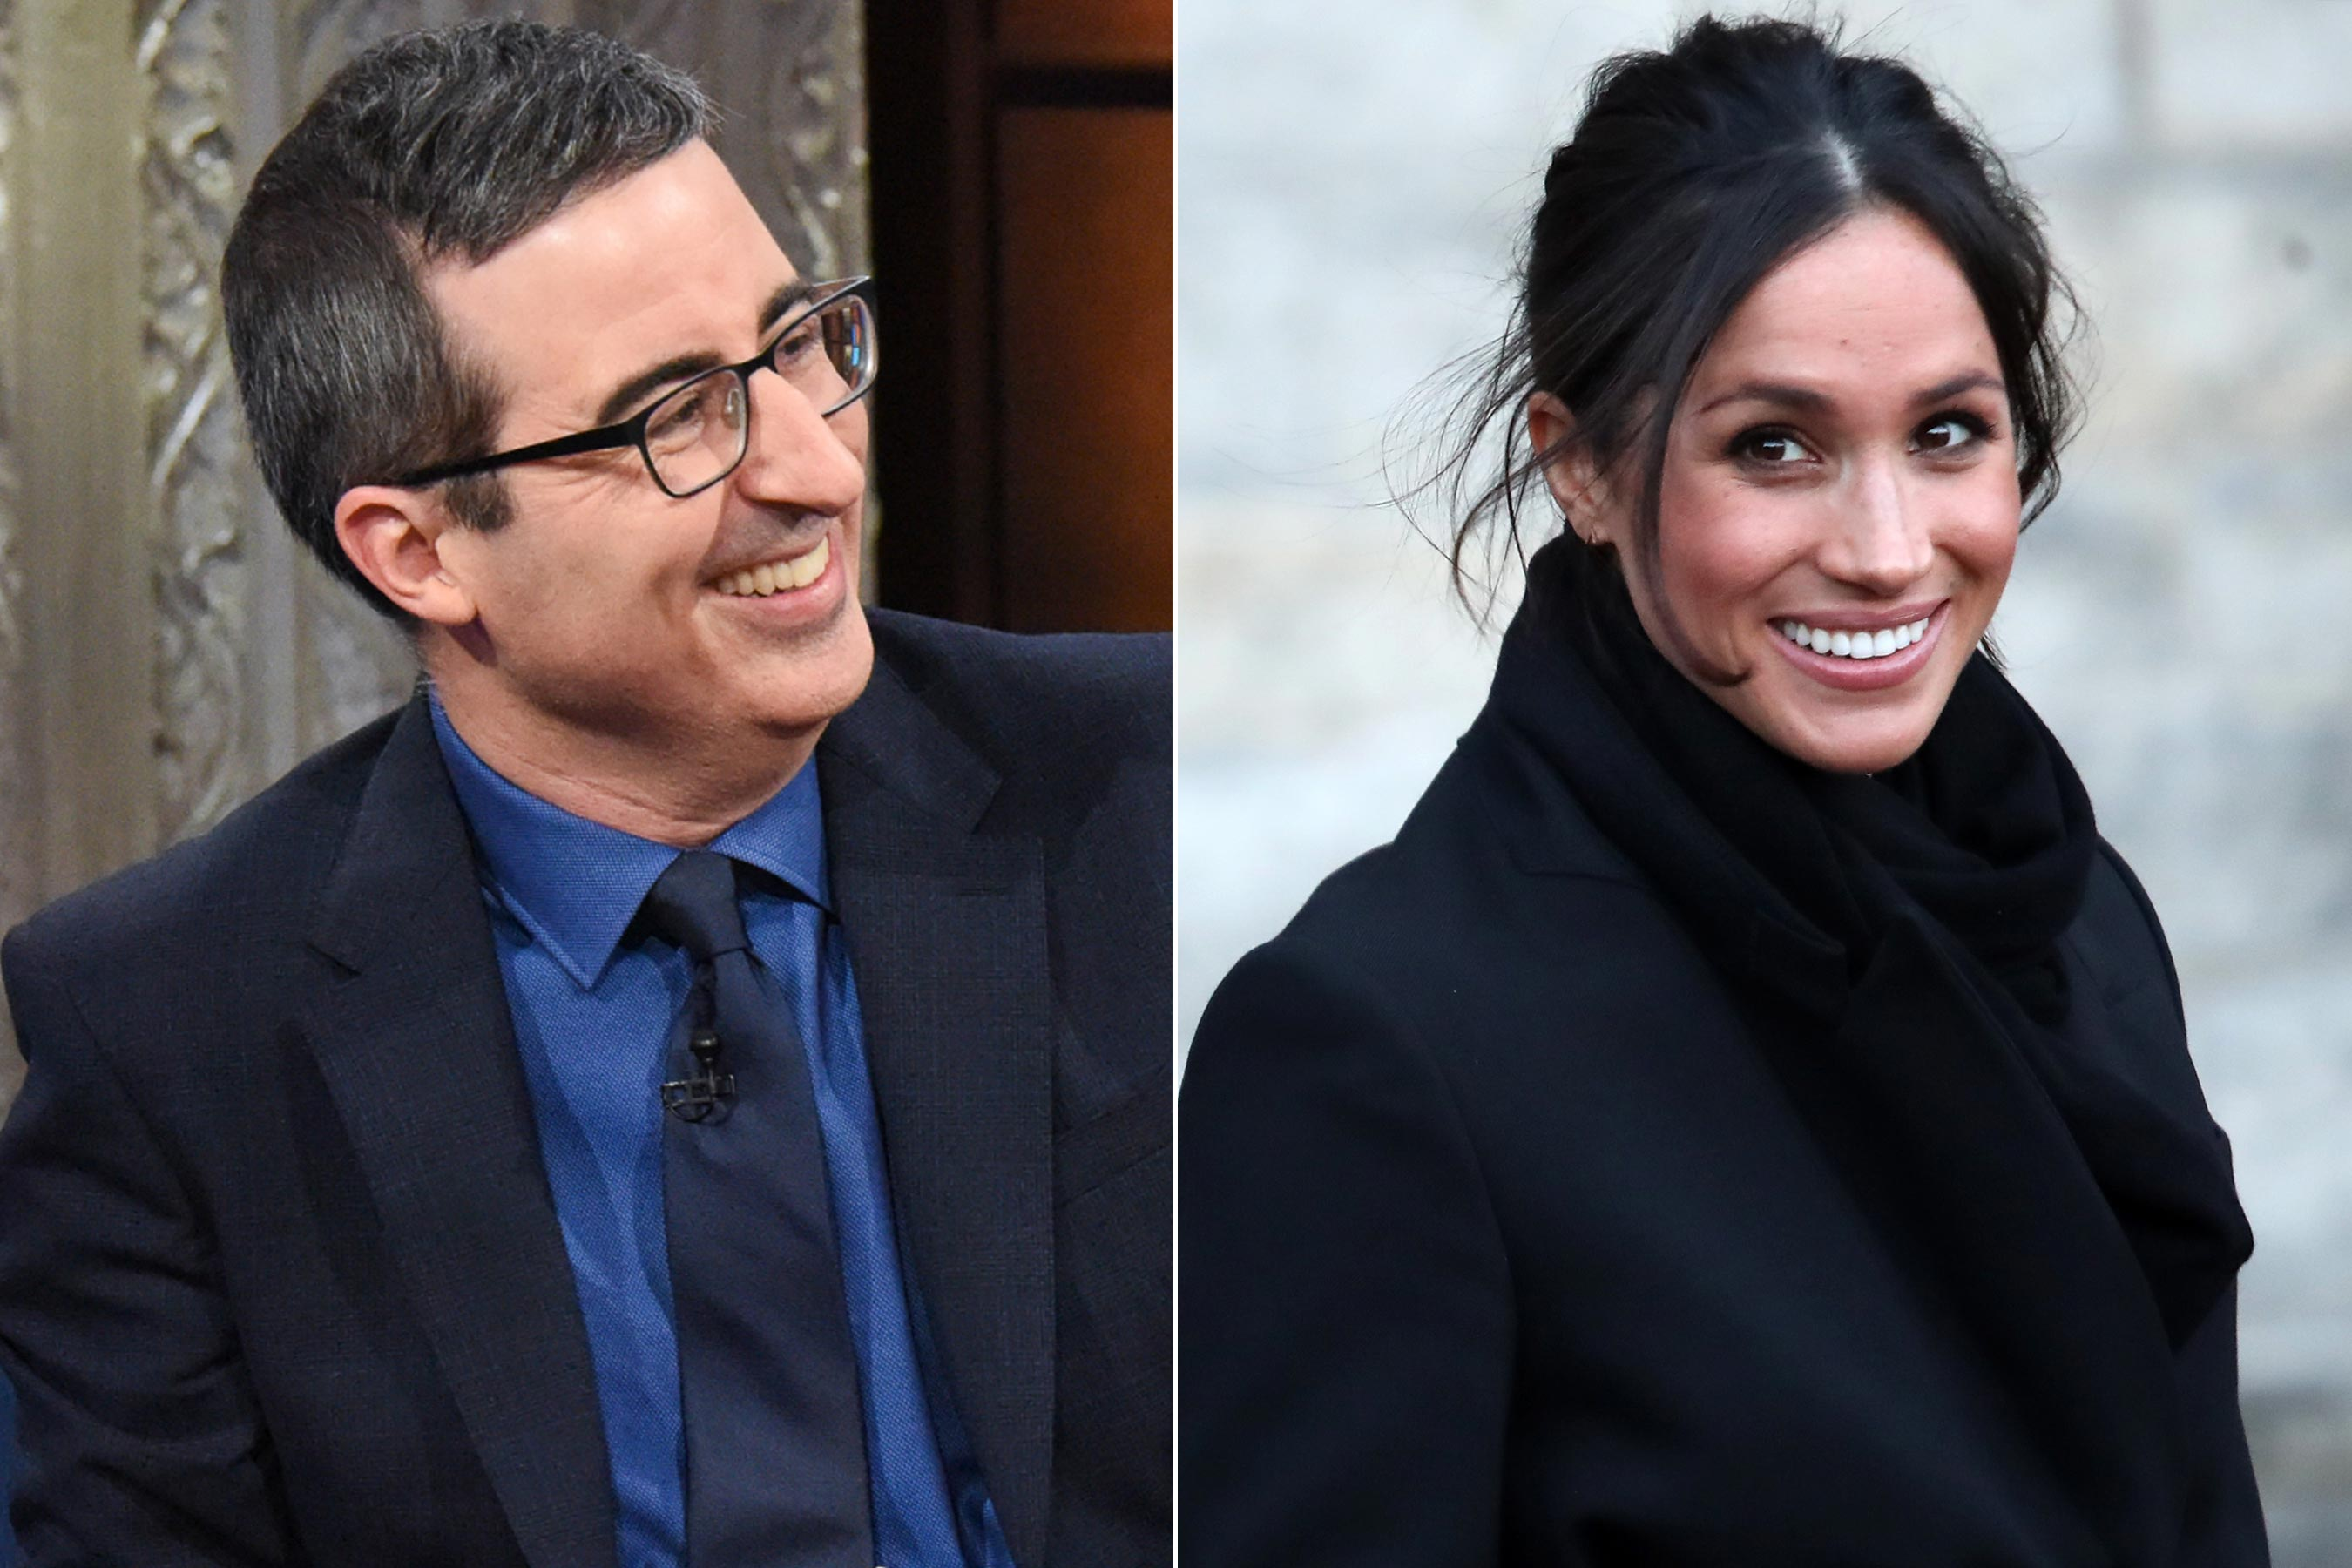 Meghan Markle: John Oliver warns Prince Harry's fiancée about royals